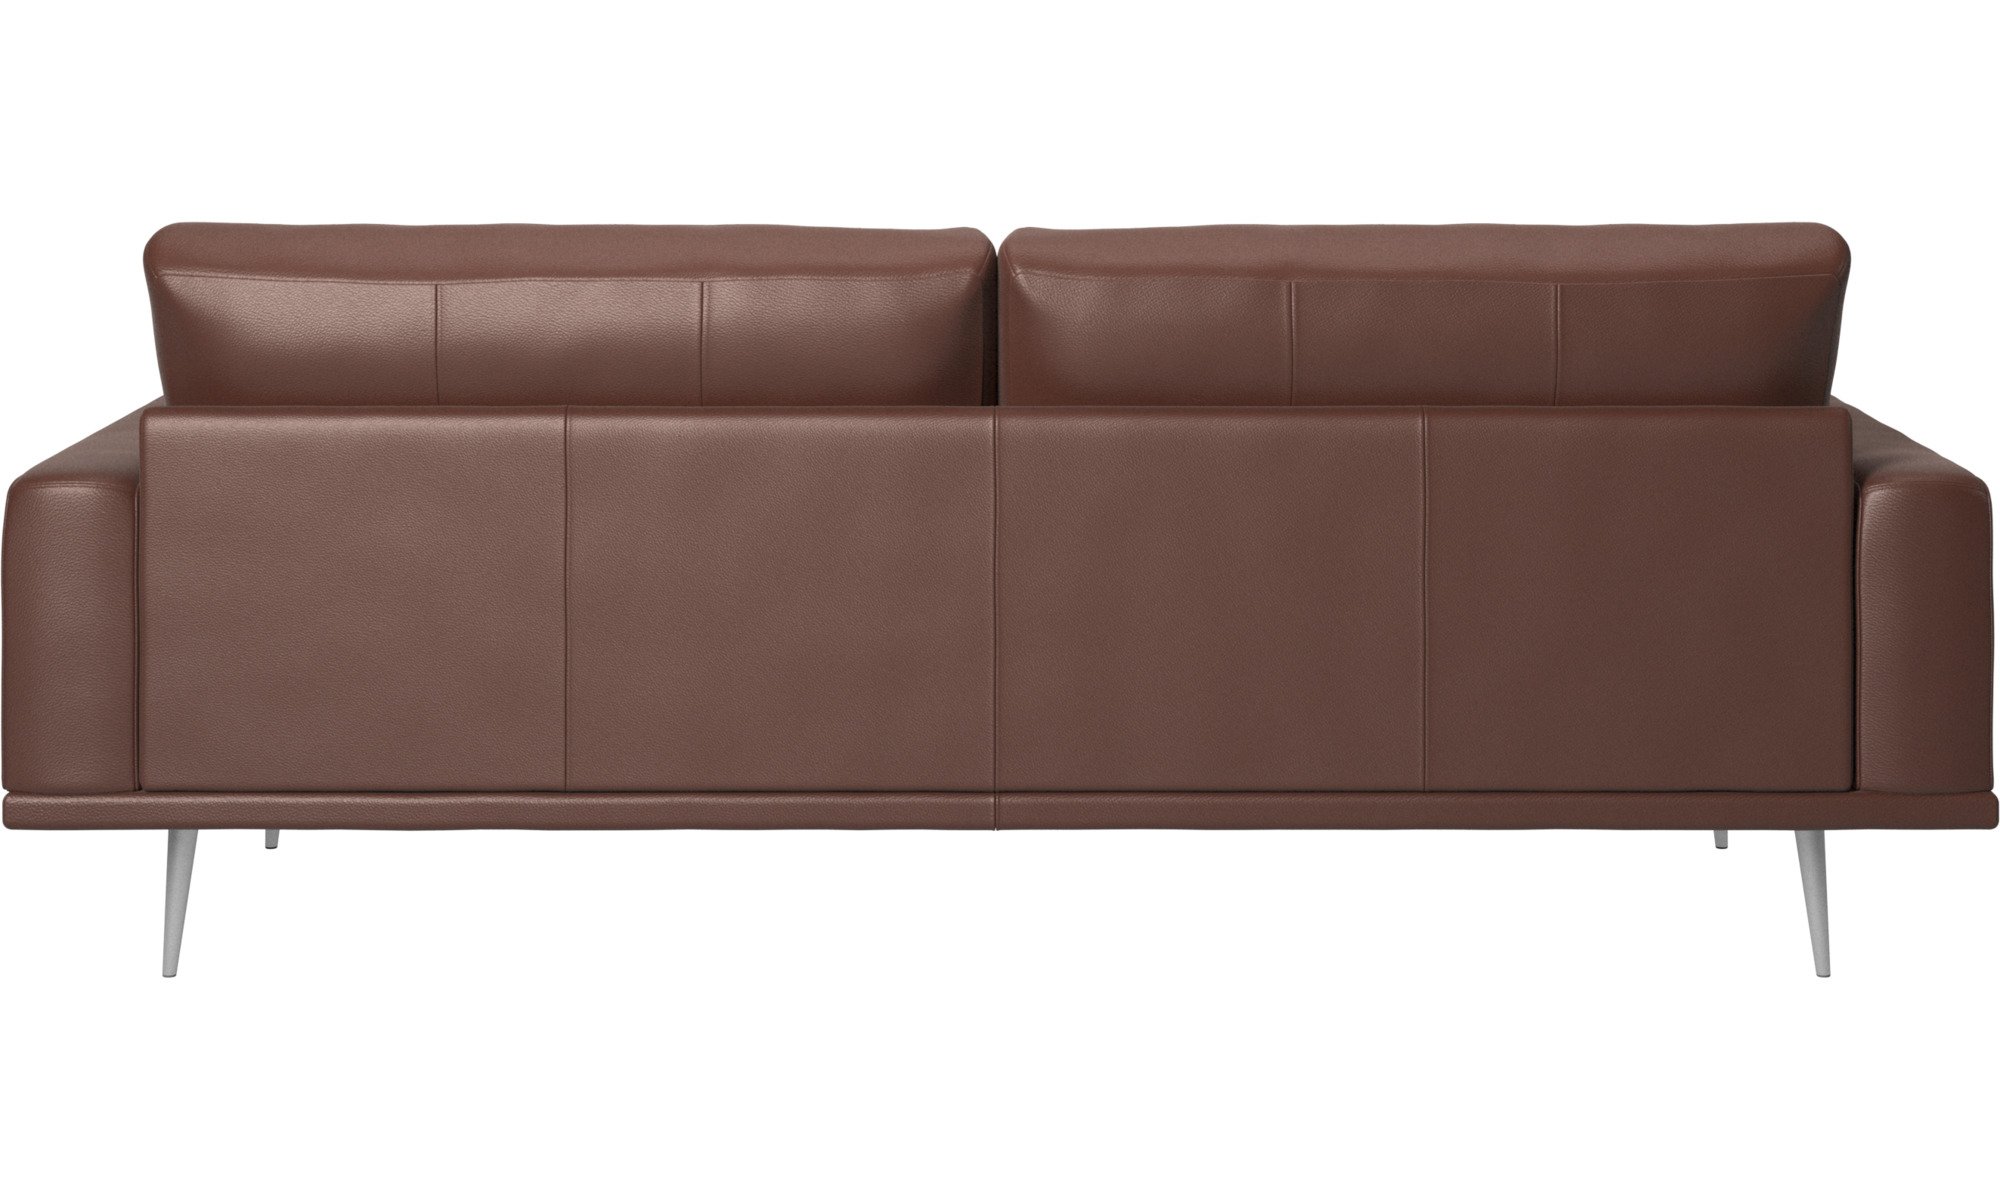 boconcept sleeper sofa review outdoor sectional set bed dimensions home co